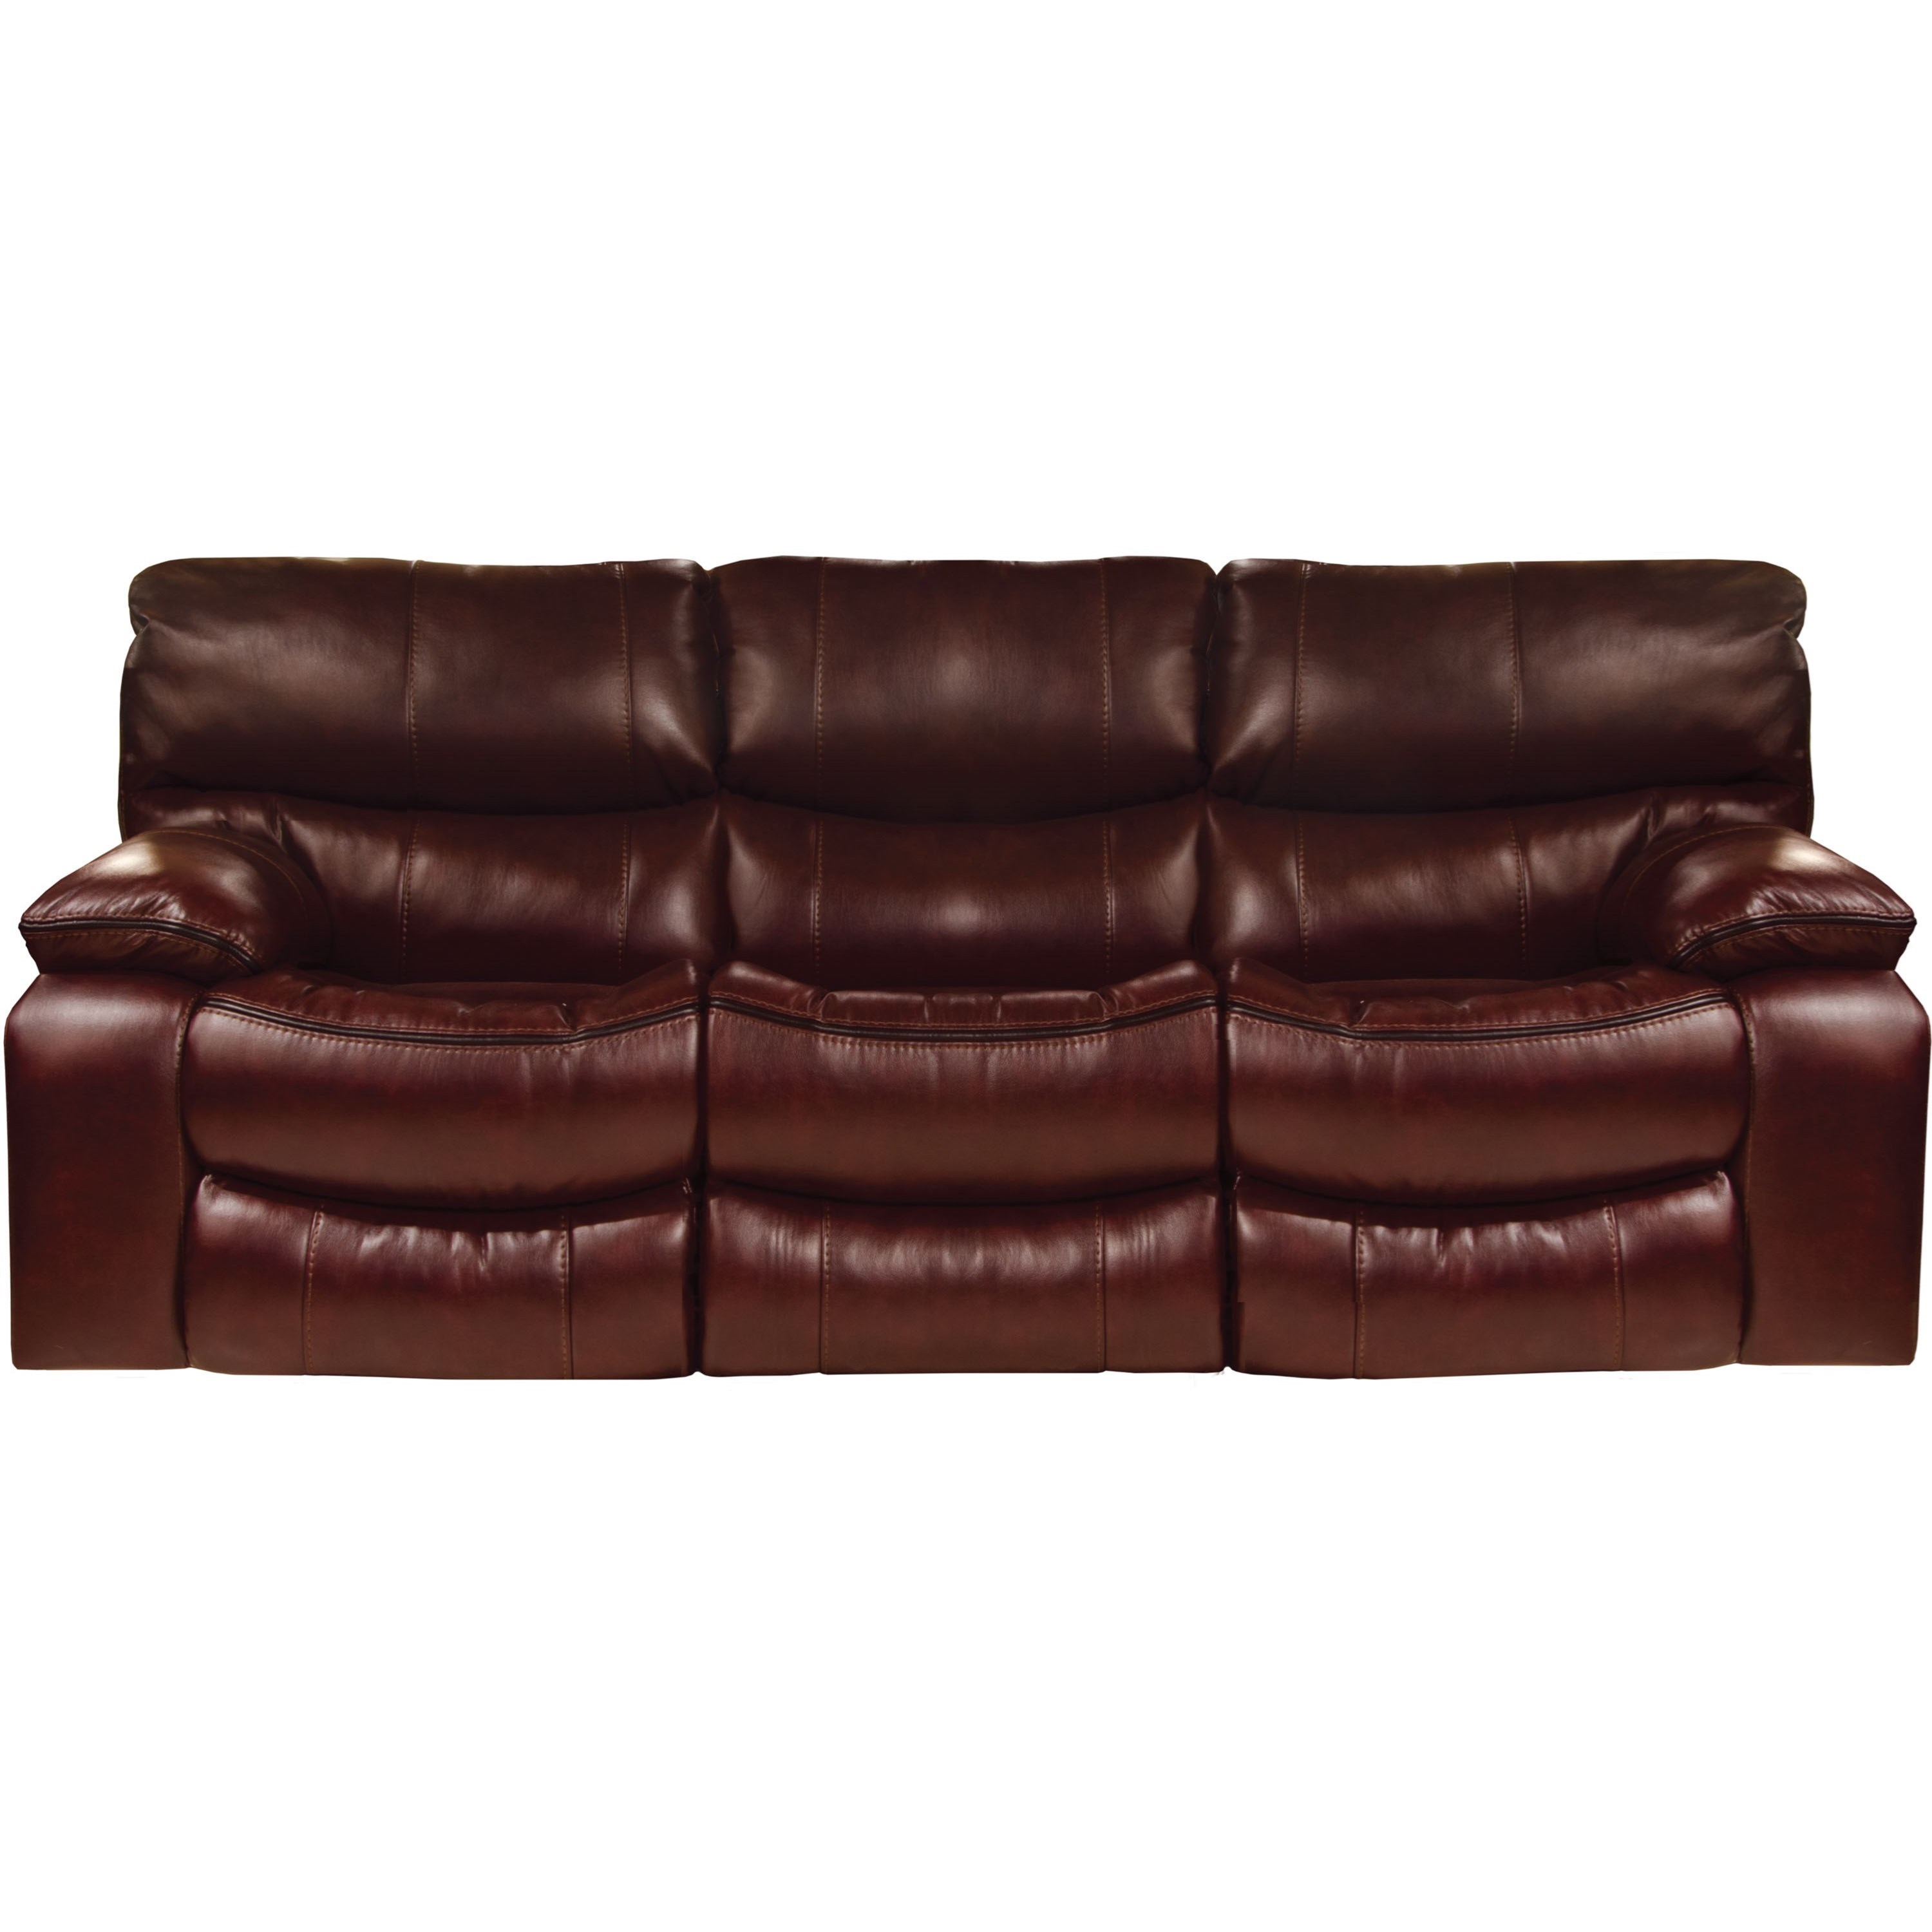 Catnapper Camden Lay Flat Reclining Sofa With Welt Stitching